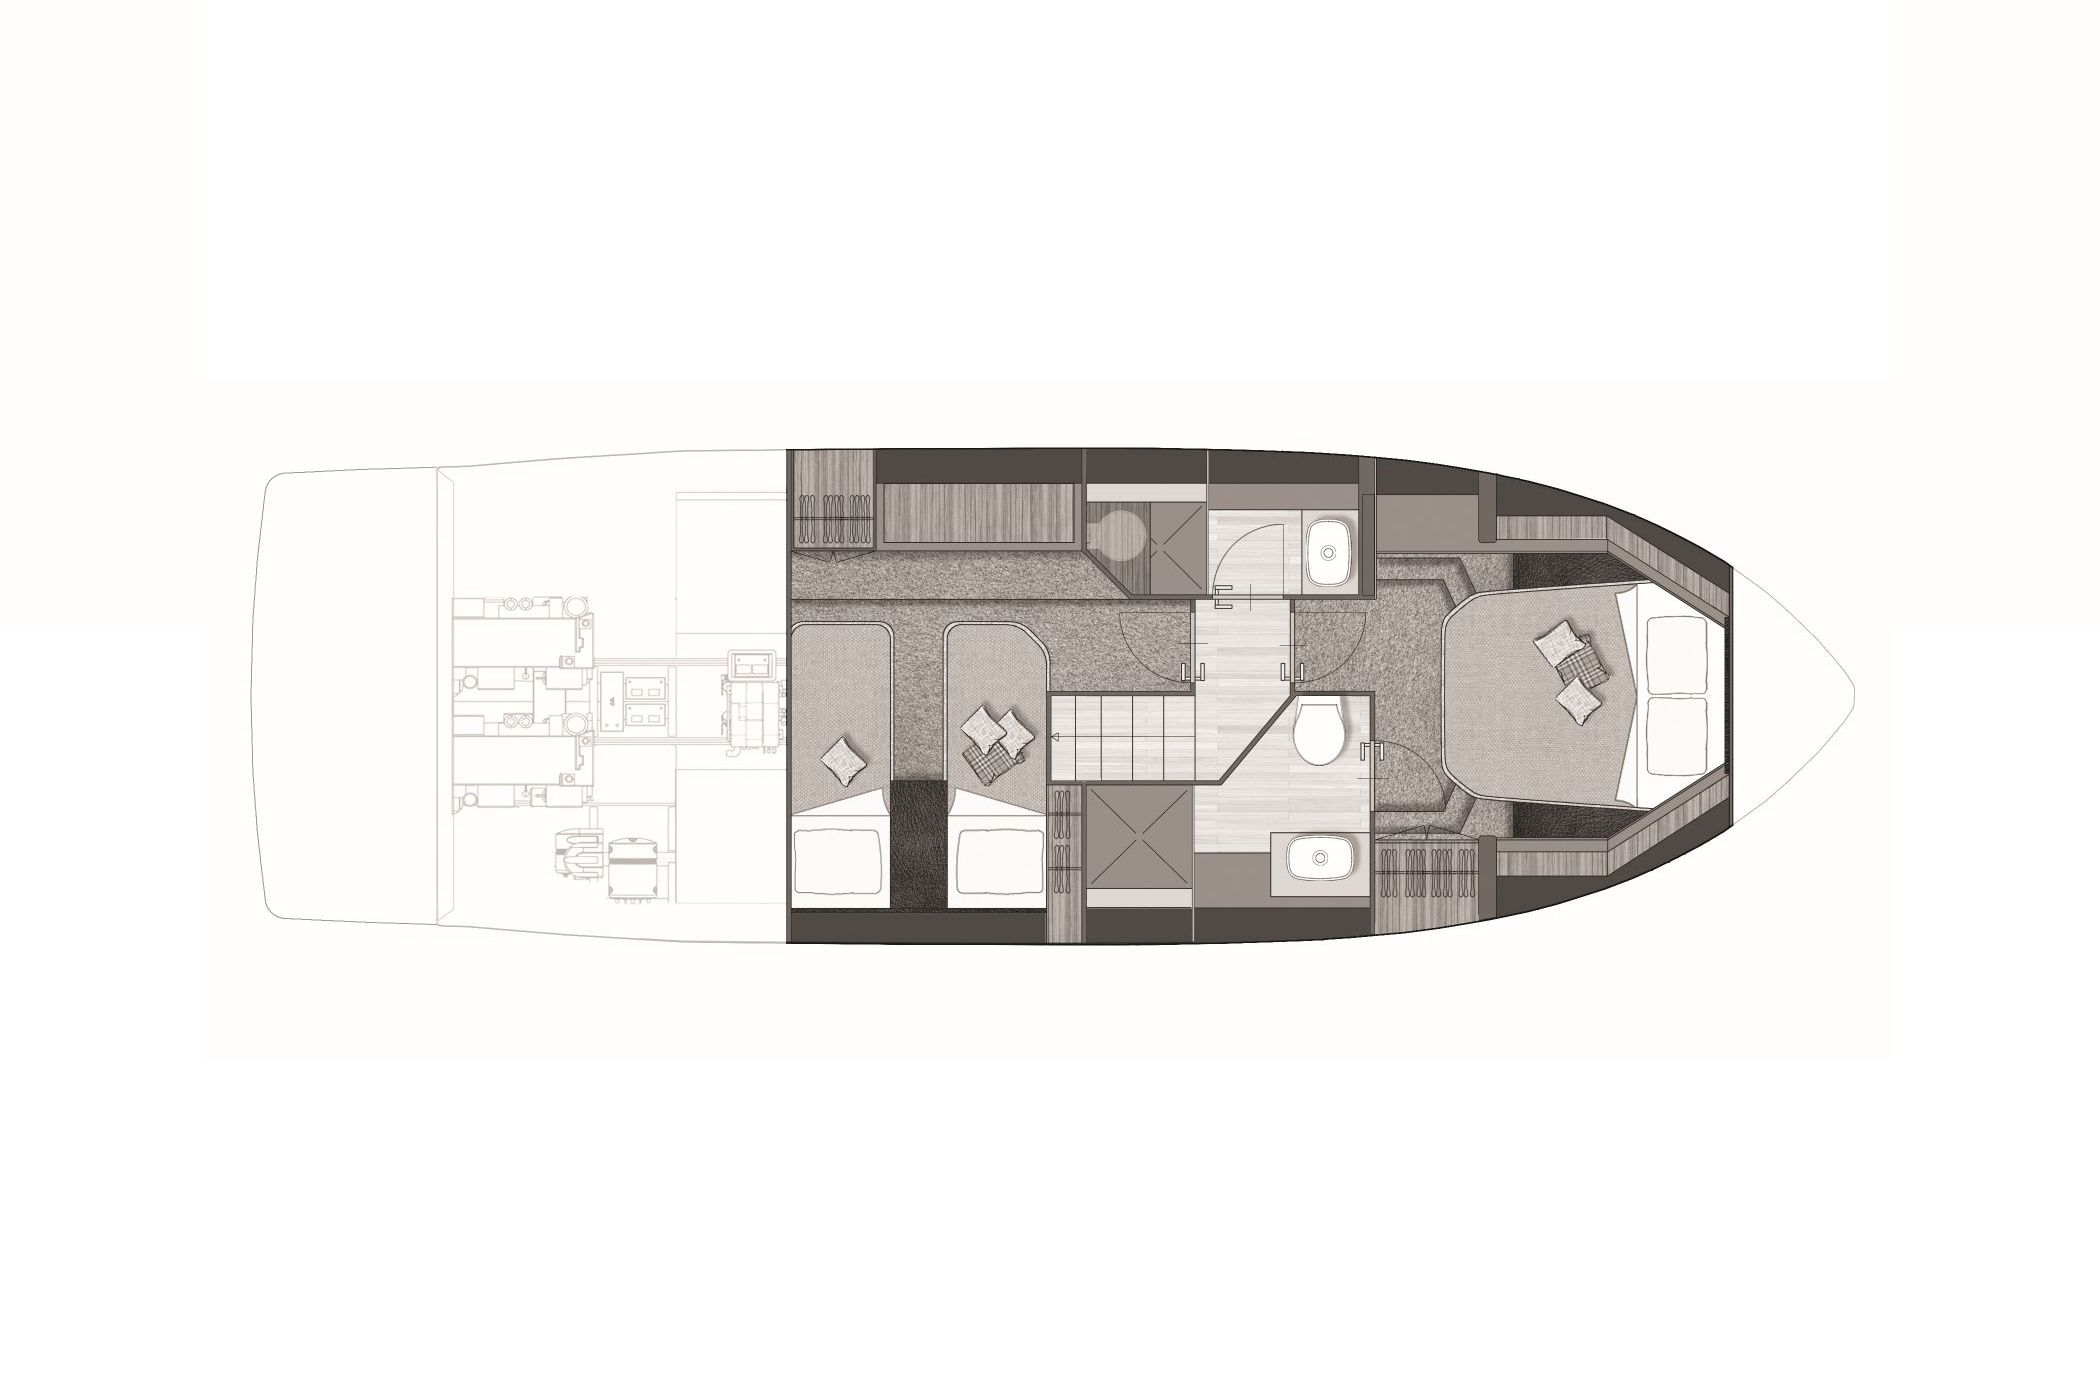 Cranchi T36 LOWER DECK 2 CABINS